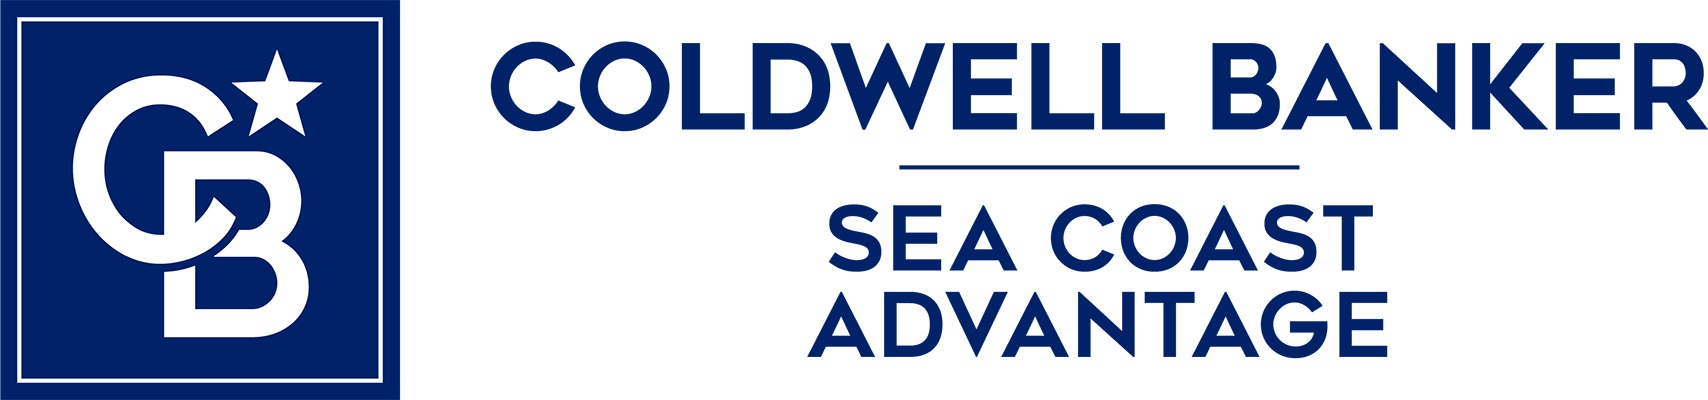 Stephanie Putnam - Coldwell Banker Sea Coast Advantage Realty